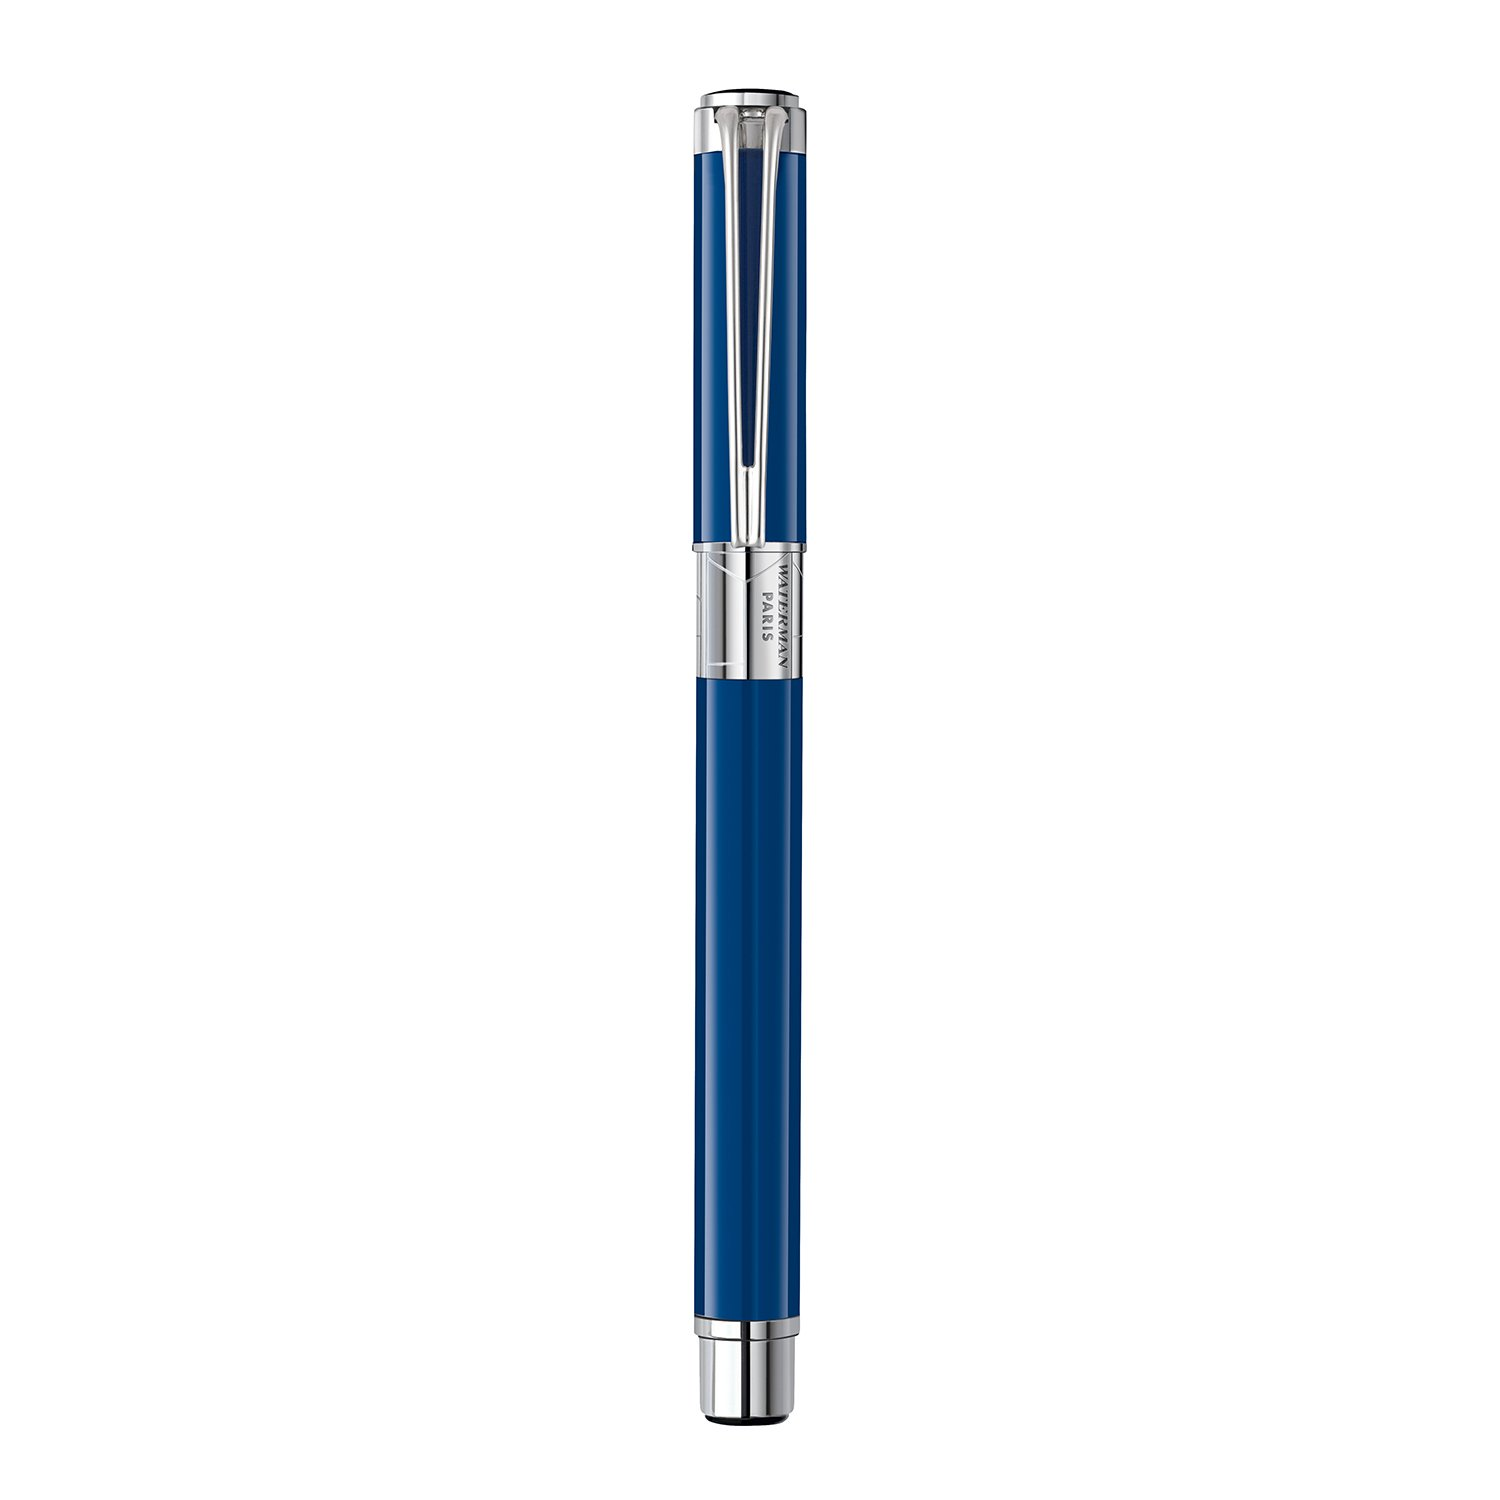 Waterman Perspective Rollerball Pen, Gloss Blue with Chrome Trim, Fine Point with Black Ink Cartridge, Gift Box by Waterman (Image #4)